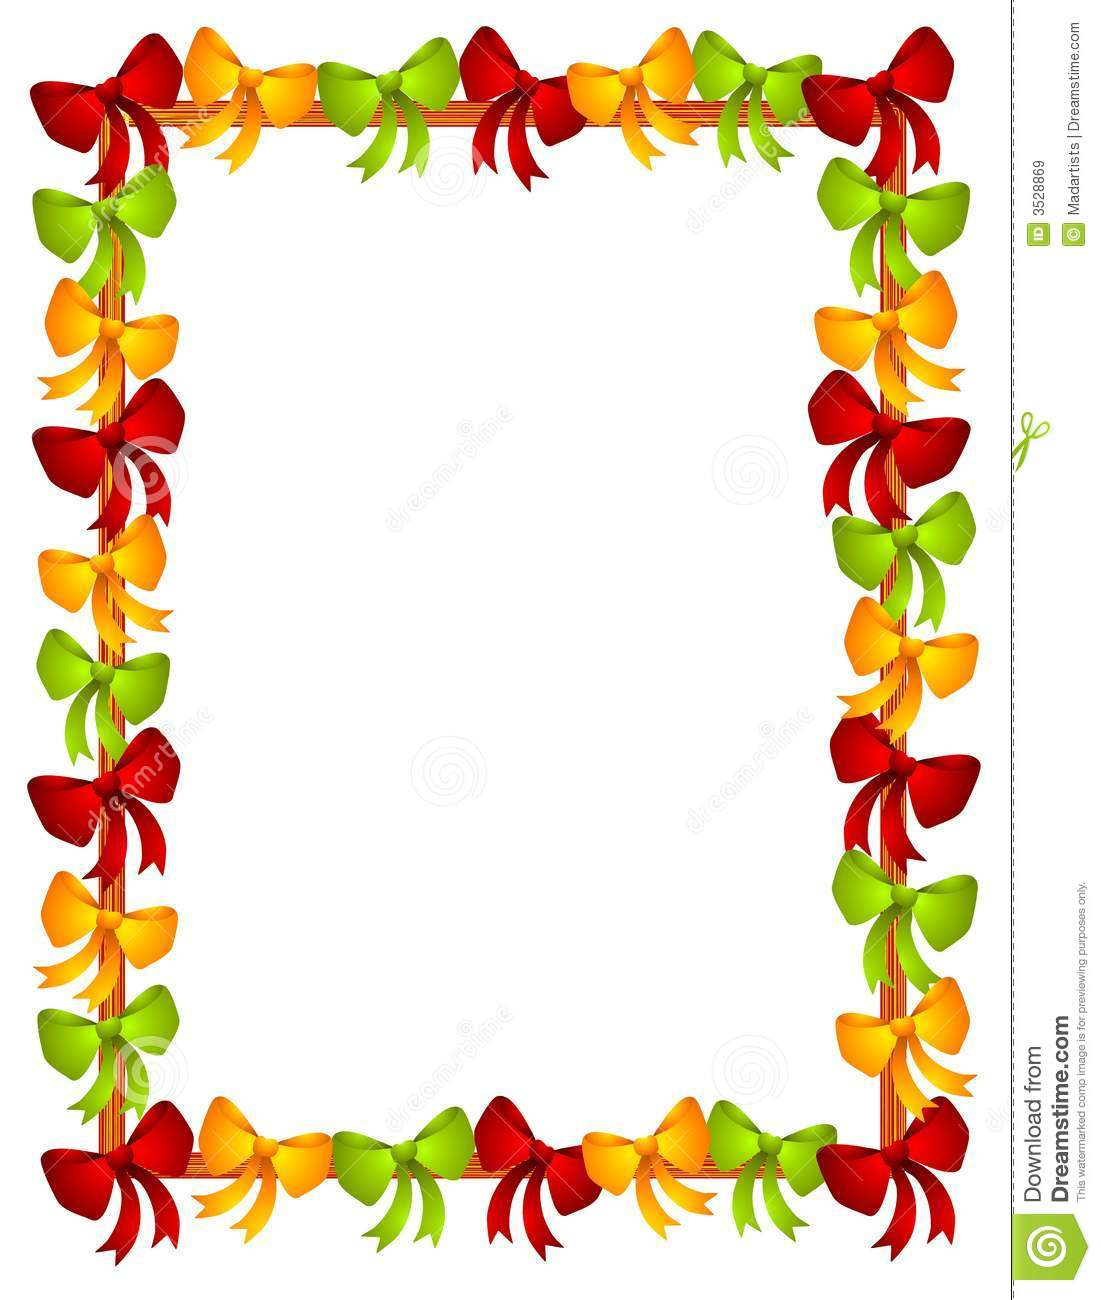 clip art illustration of colorful Christmas themed bows arranged as ...